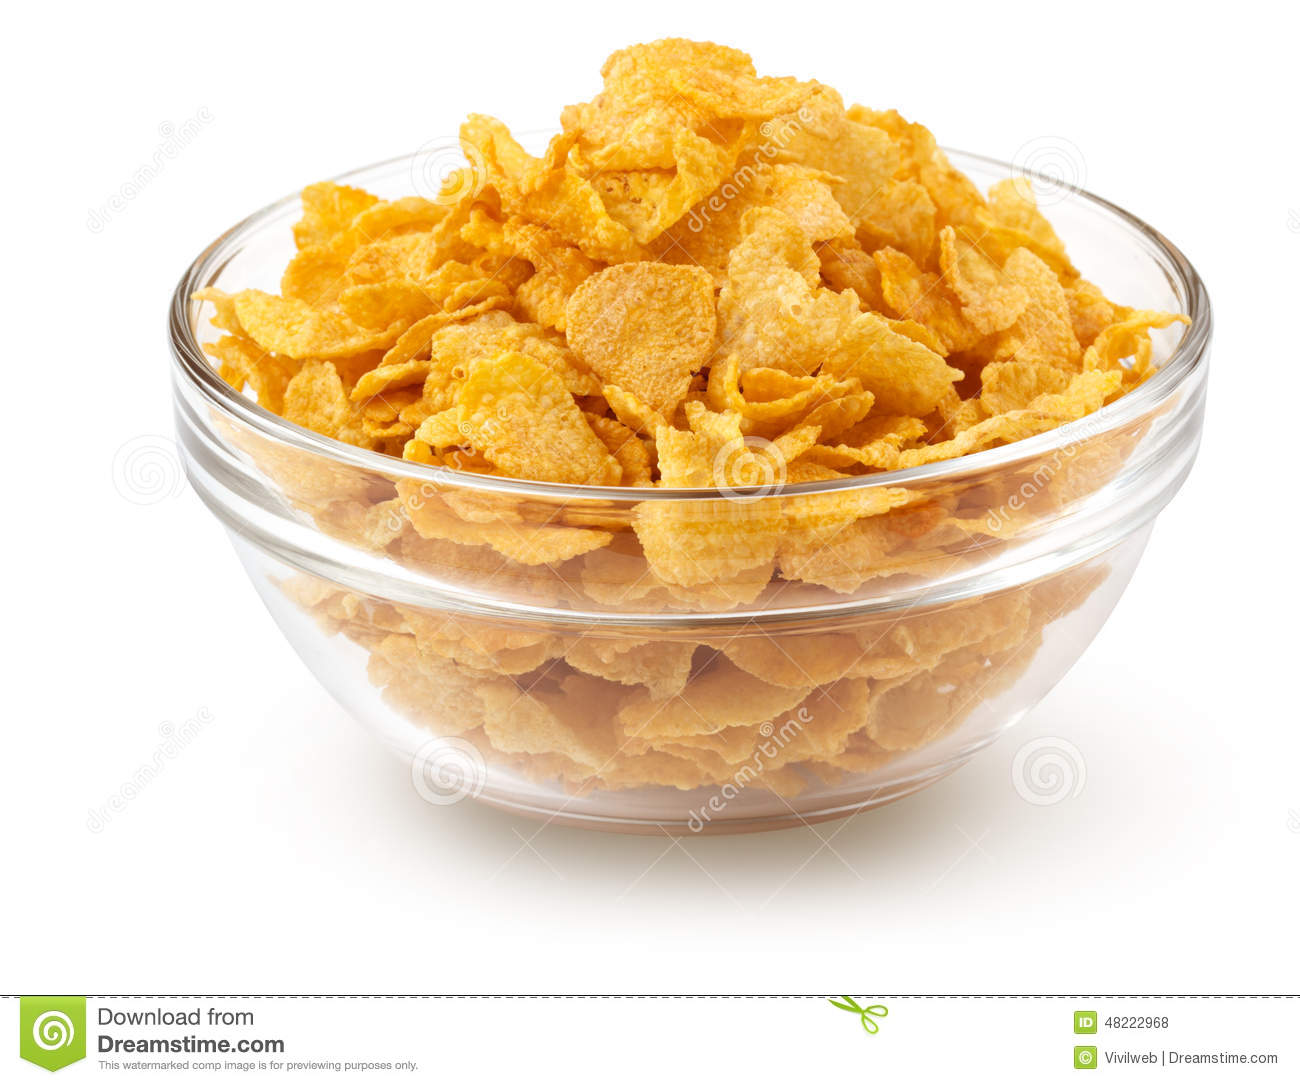 how to use corn flakes for breading